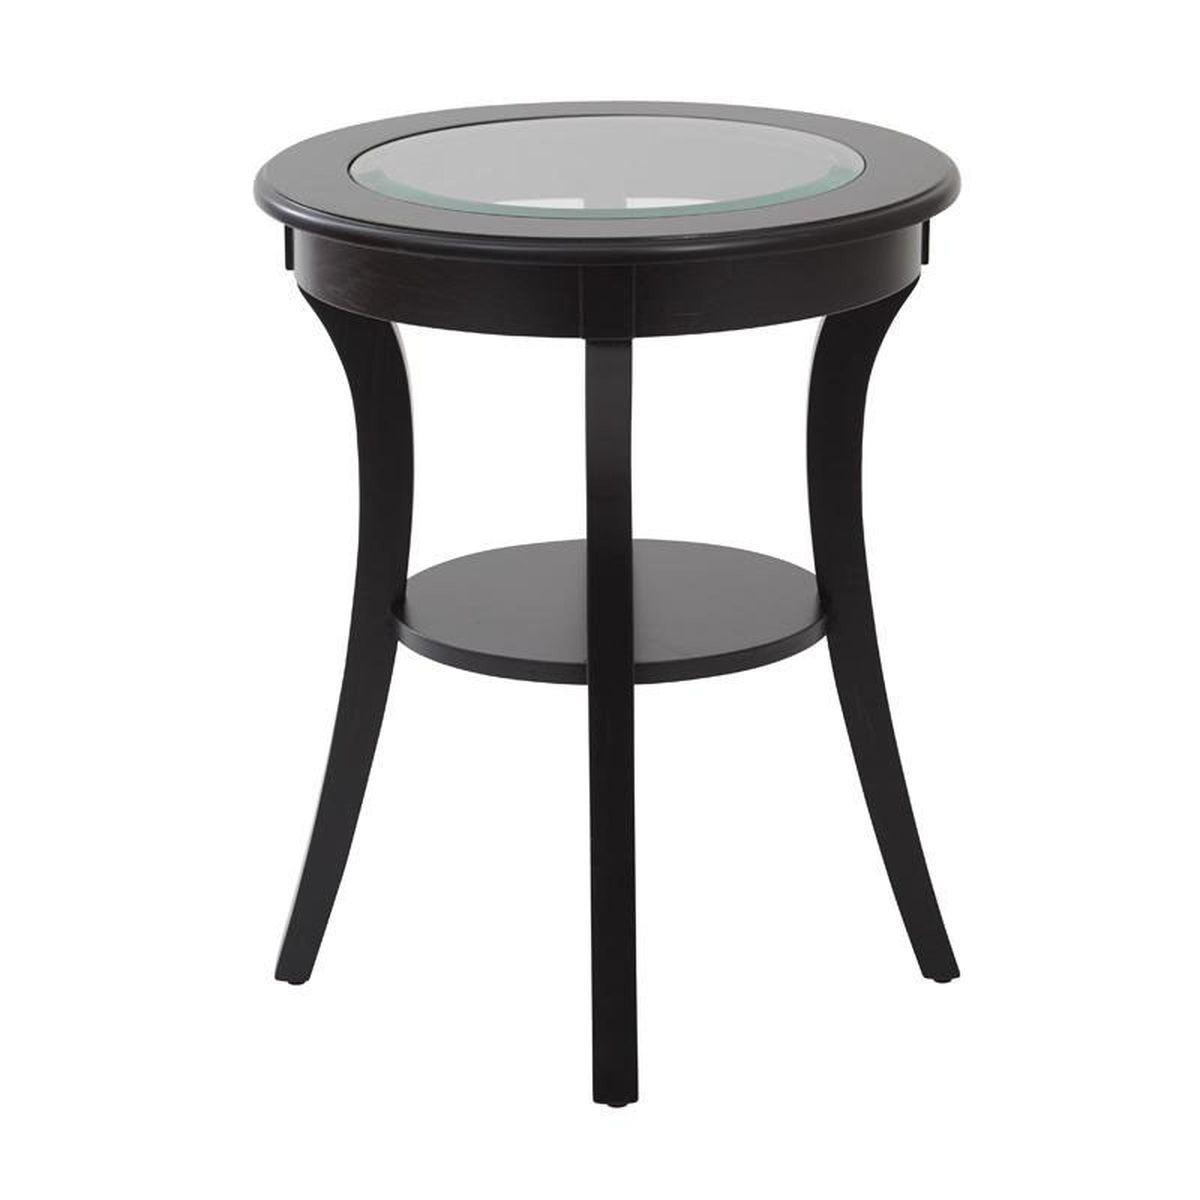 harper black glass accent table bizchair office star products wood top our osp designs round with finish and shelf counter set peva tablecloth ethan allen leather furniture tables